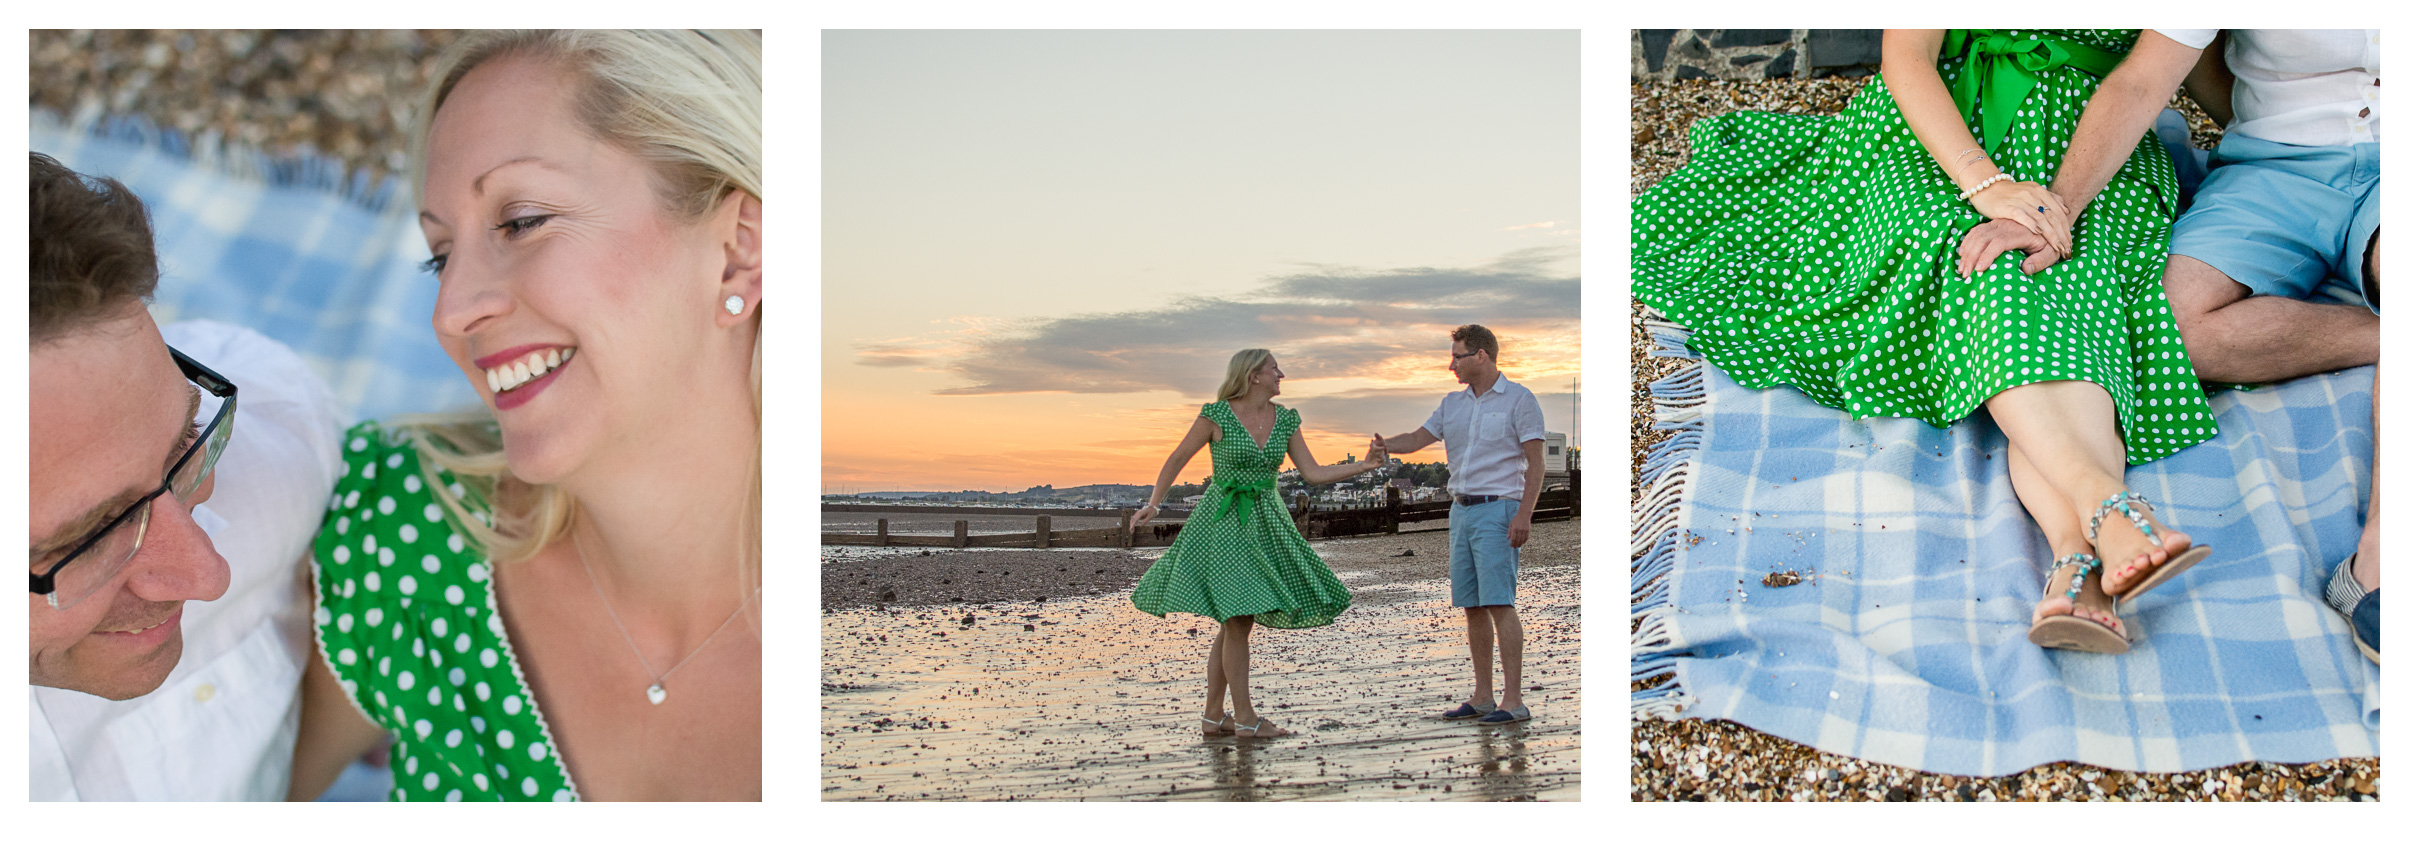 """We used Charlotte for our engagement shoot on the beach and was really pleased with the photos she took. She made us feel really comfortable while making us laugh and smile, which meant she gained some lovely natural photographs. We had a really enjoyable evening. Would highly recommend and wouldn't hesitate in using her again"" Chris Rees     ""We were very pleased with our engagement shoot with Charlotte, she was amazing. She made the whole experience so relaxing and allowed us to be ourselves and capture our special moment together. We will cherish these photos for the whole of our lives. Thank you Charlotte for a magical evening."" RebeccaMarston"